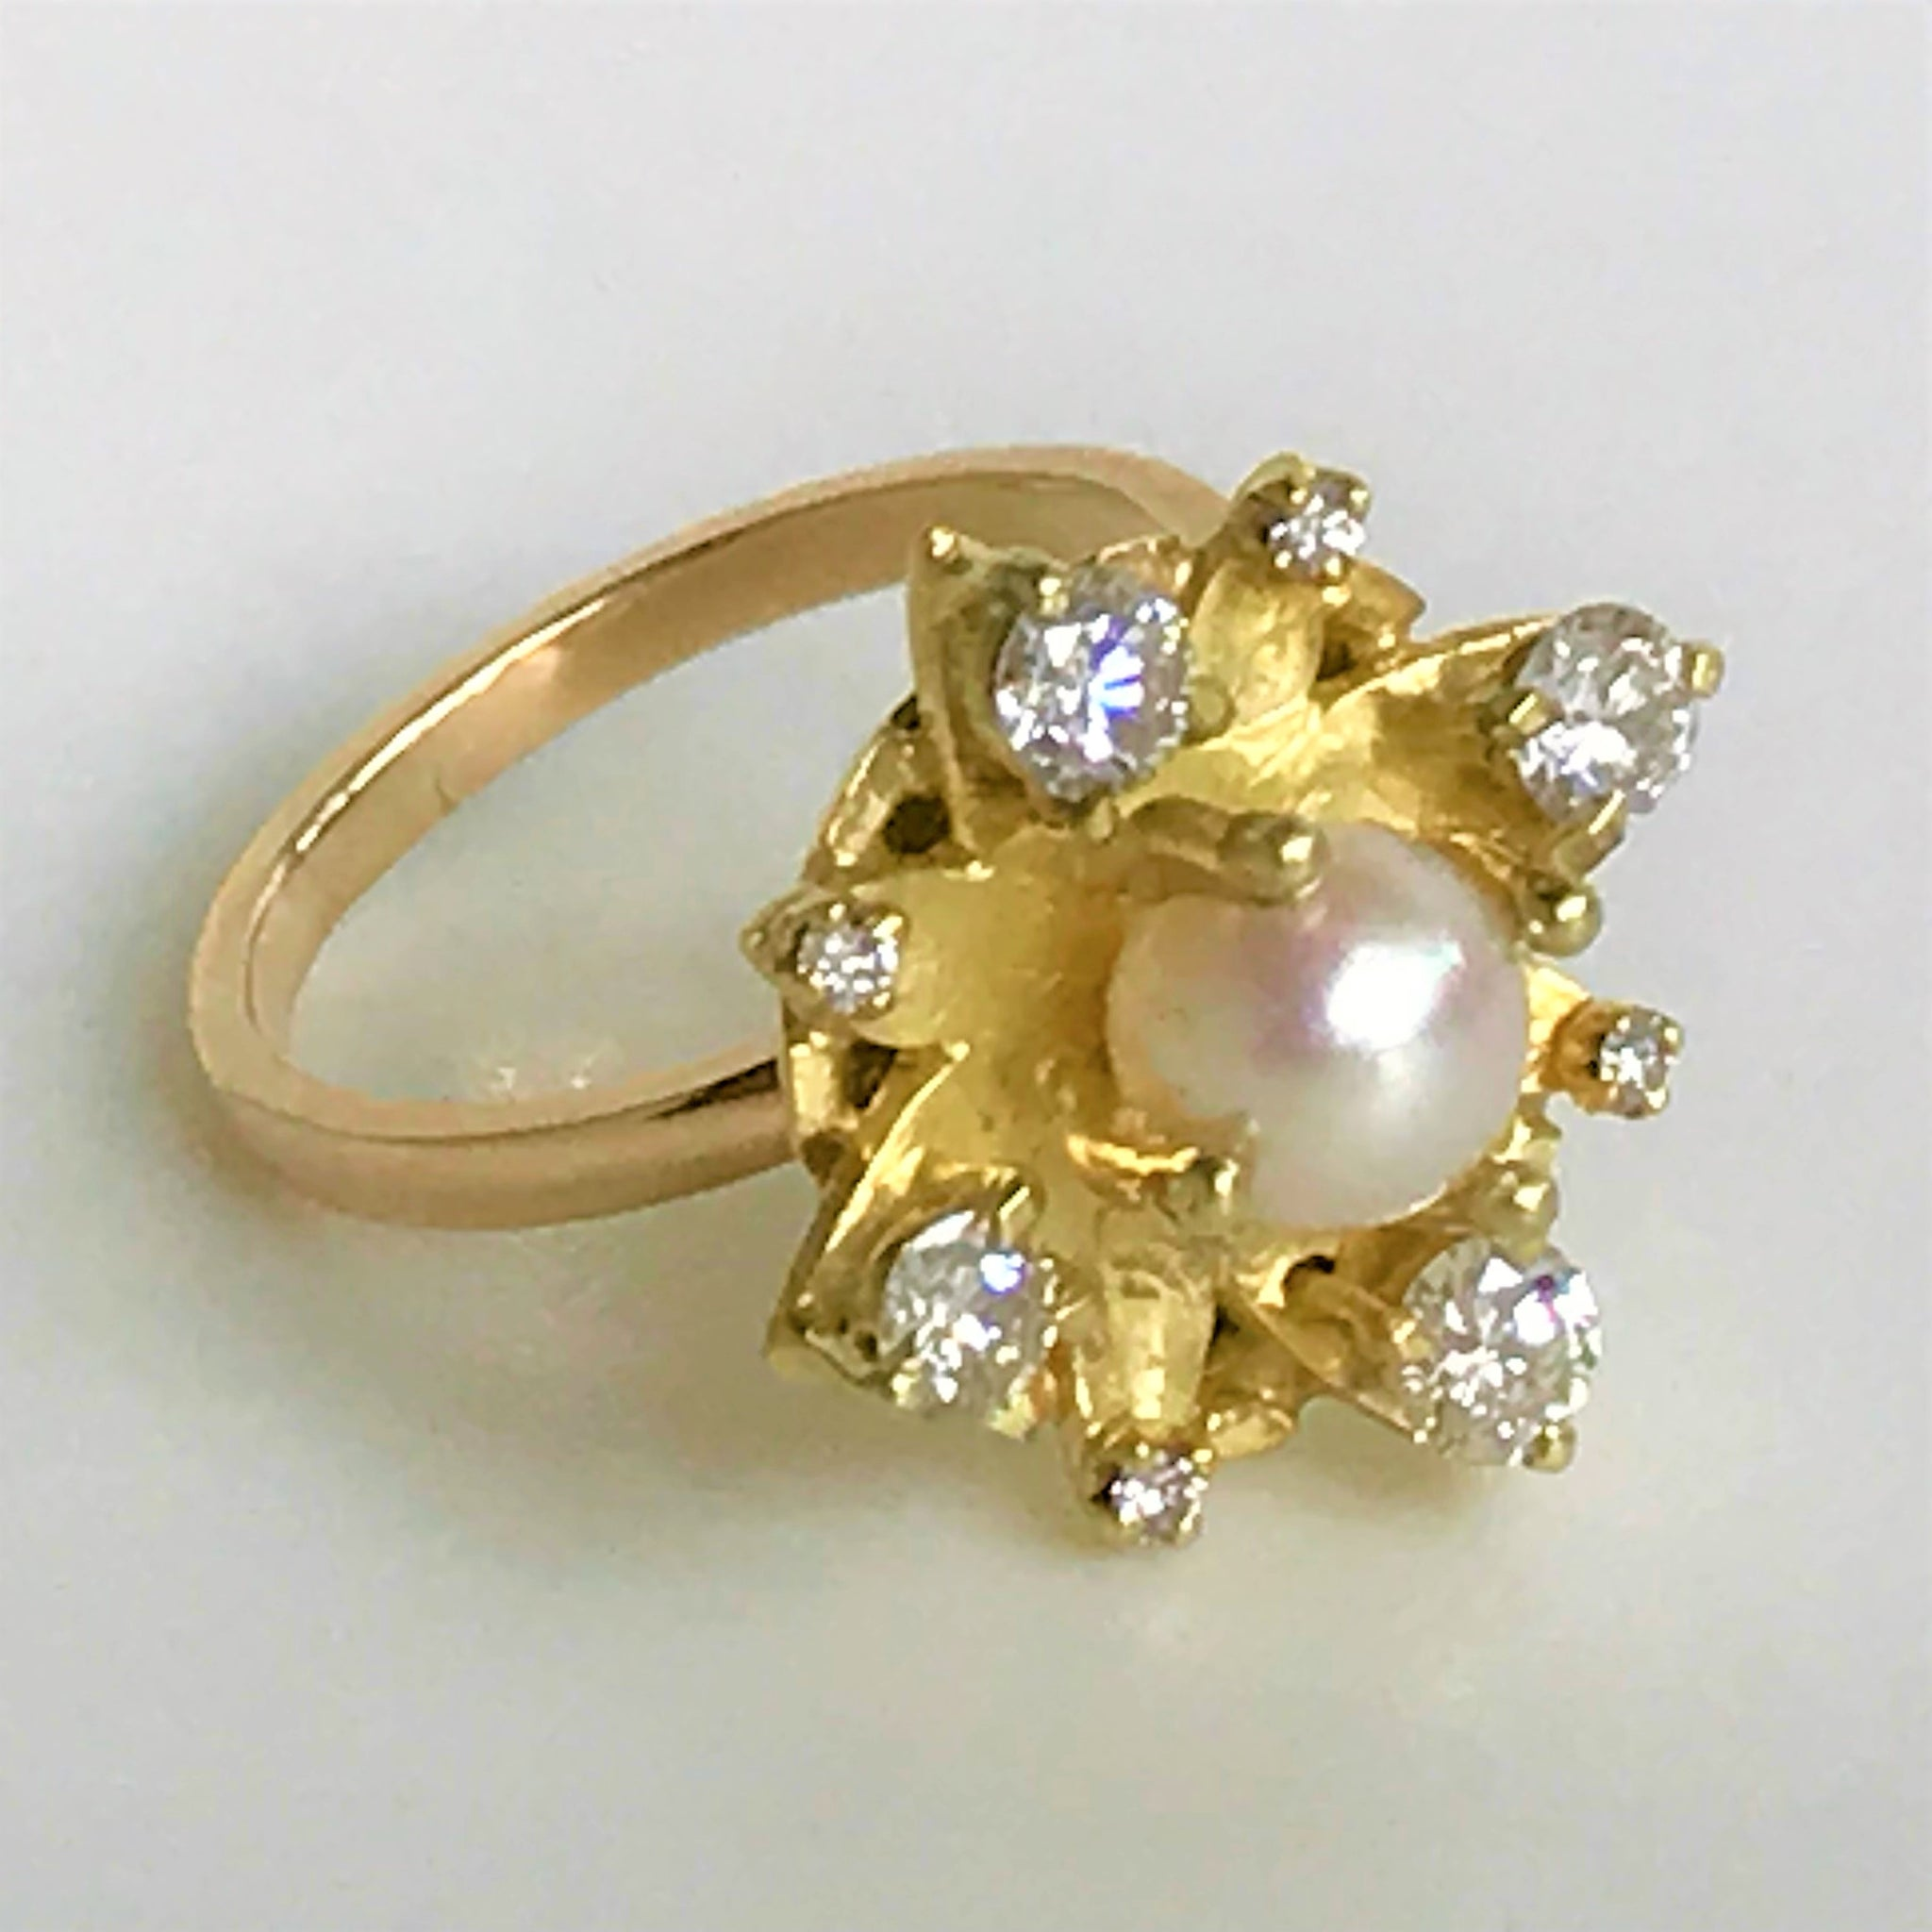 18ct Gold, Pearl and Diamond Ring